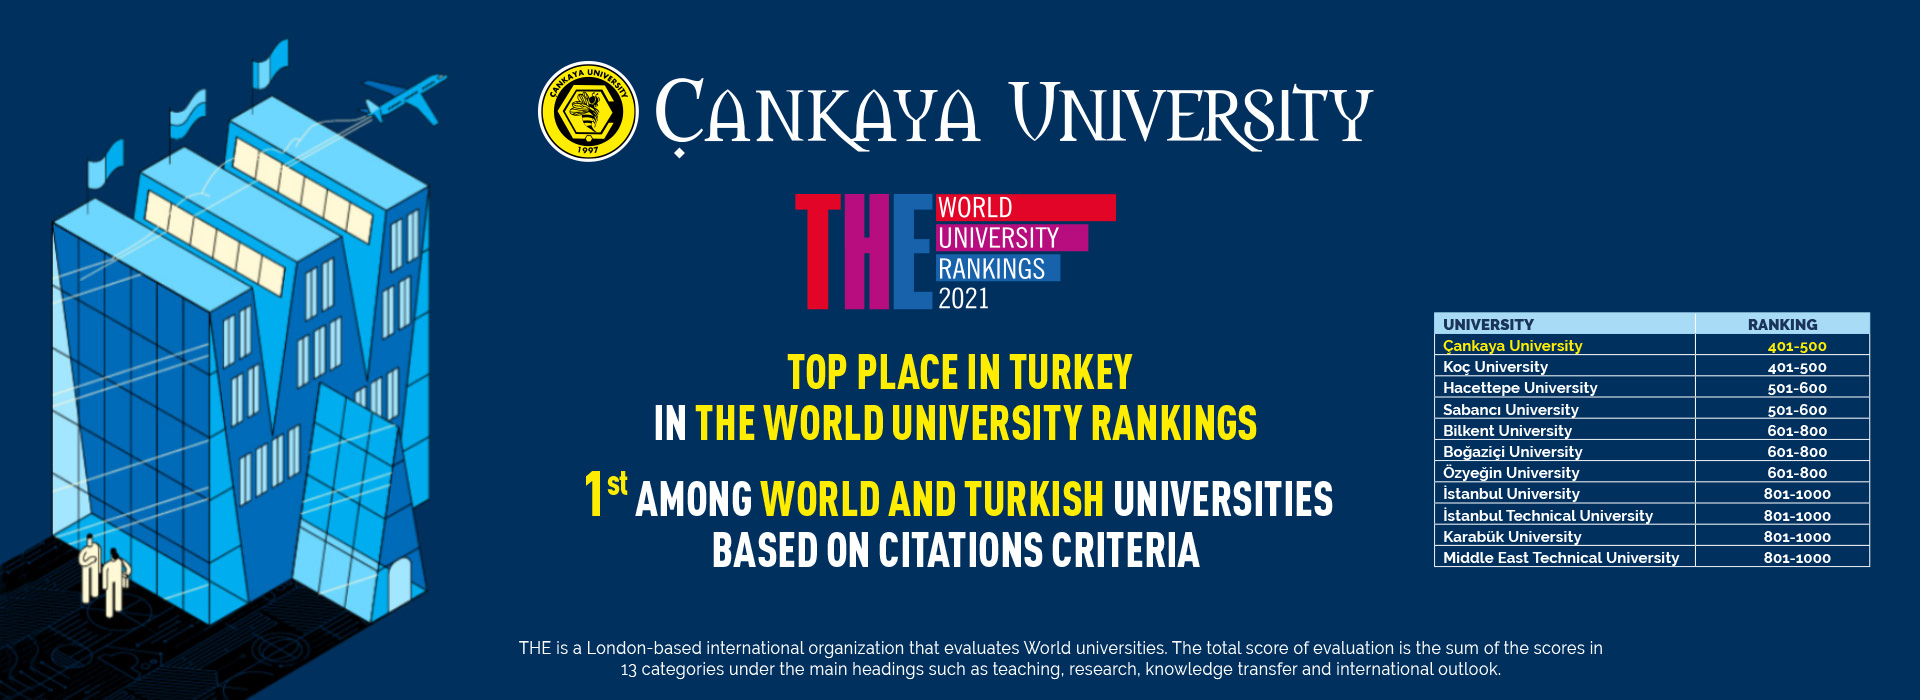 Çankaya University THE World University